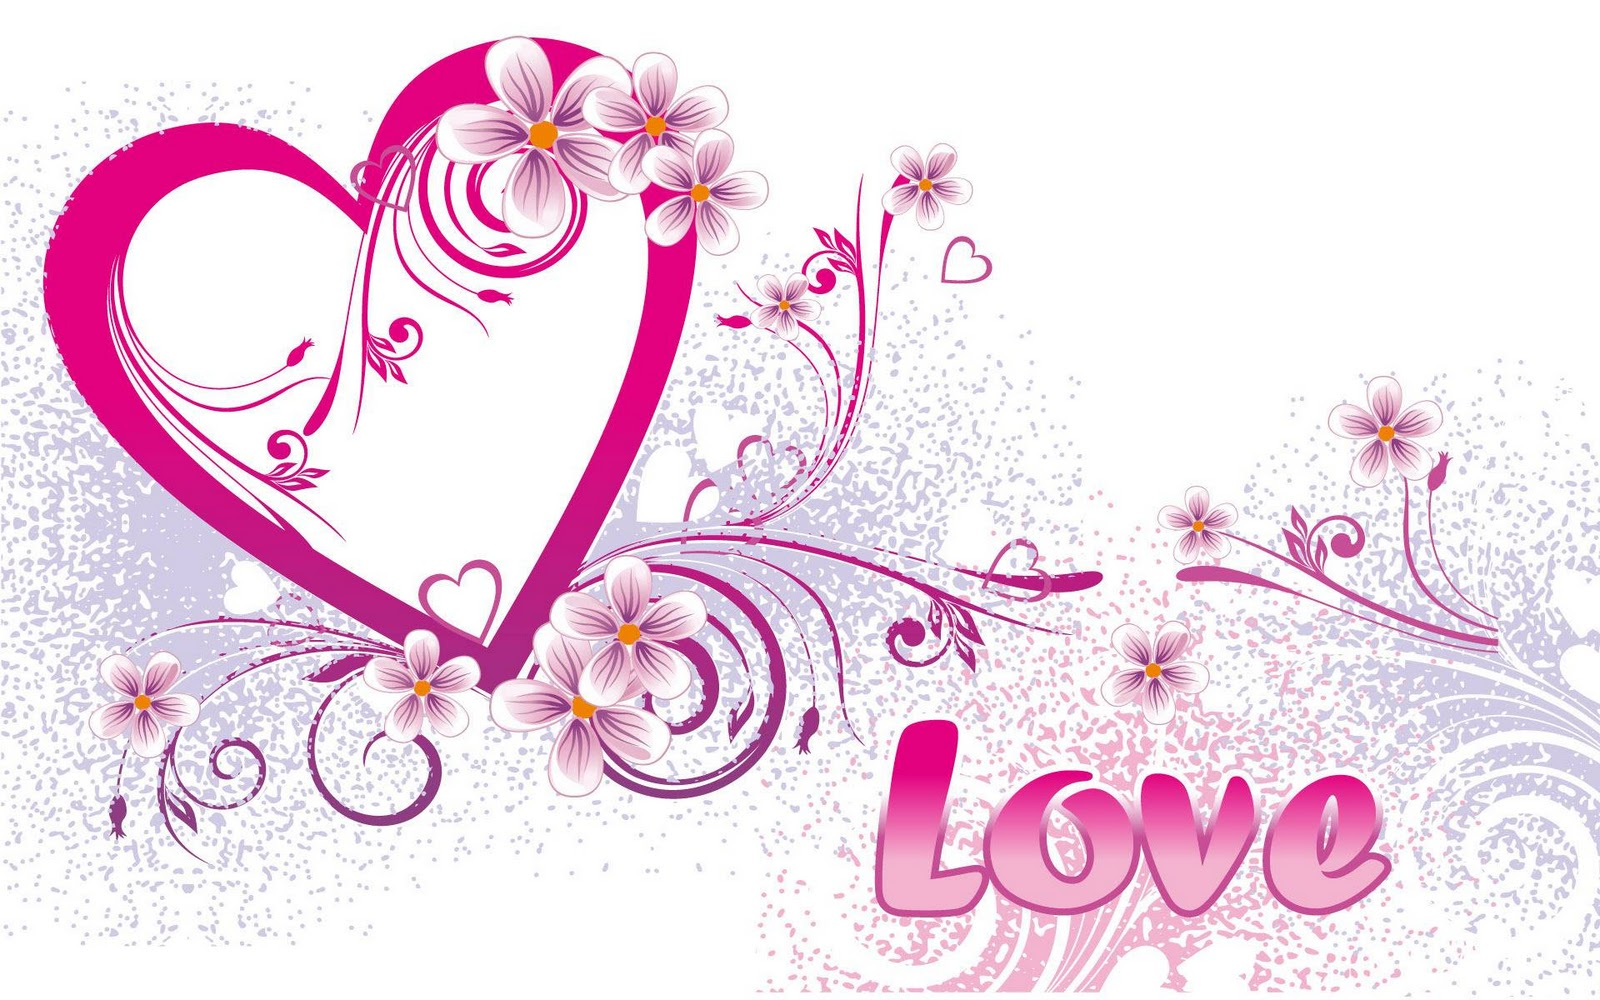 Love Wallpaper In Name : wallpaper: S Love Name Wallpaper